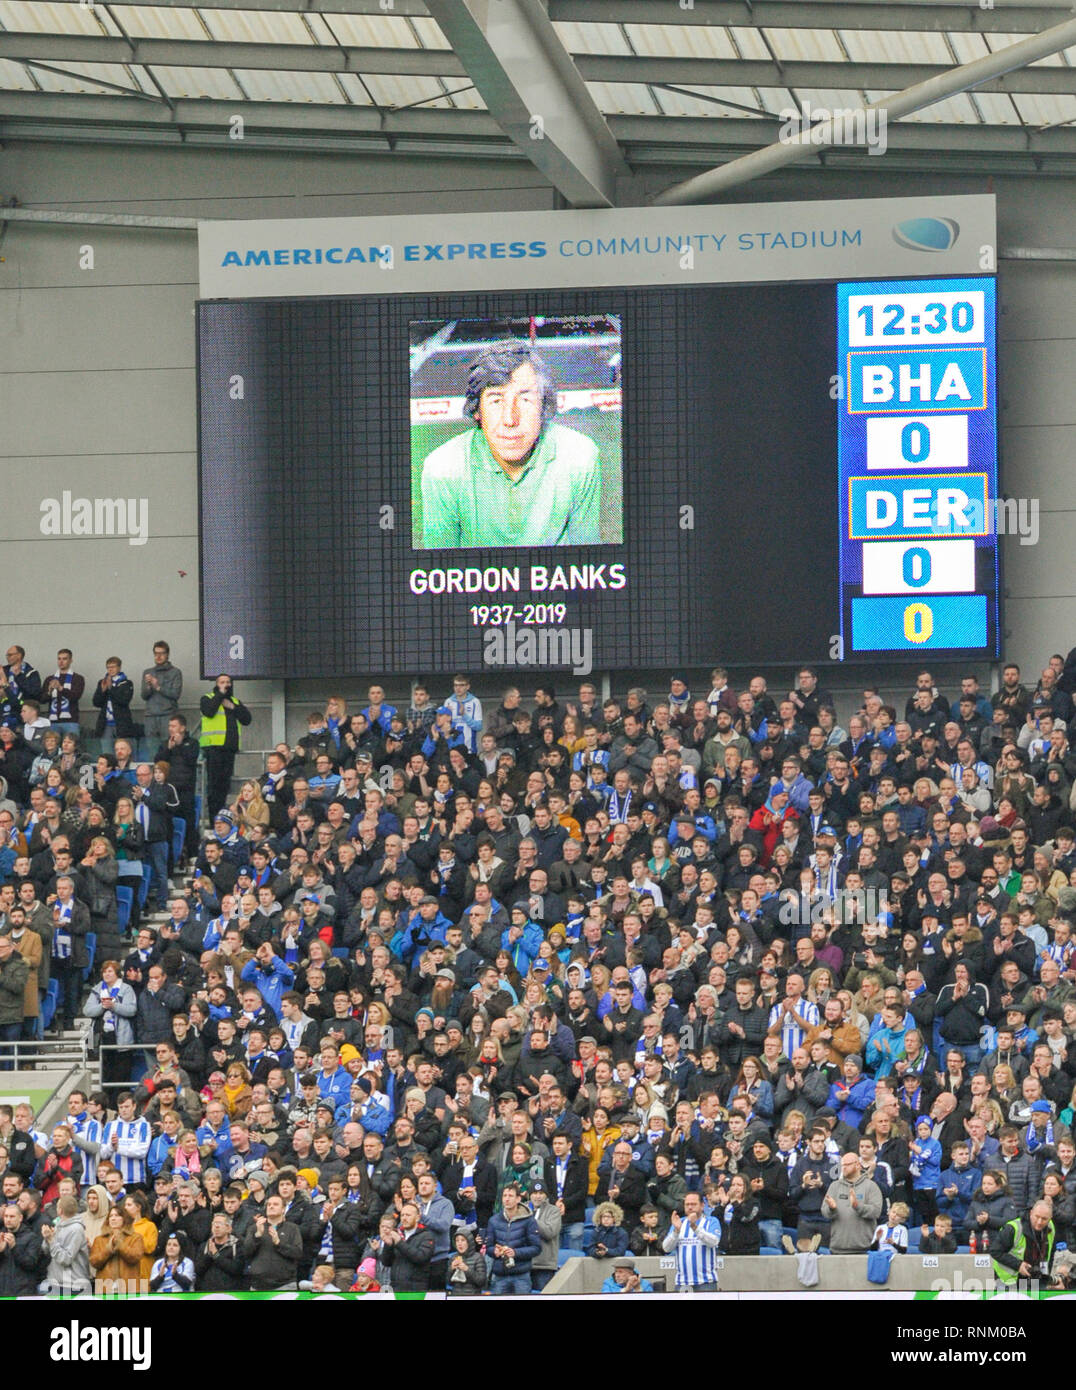 A ttribute and minutes applause for the great Gordon Banks before the FA Cup 5th round match between Brighton & Hove Albion and Derby County at the American Express Community Stadium . 16 February 2019 Editorial use only. No merchandising. For Football images FA and Premier League restrictions apply inc. no internet/mobile usage without FAPL license - for details contact Football Dataco - Stock Image